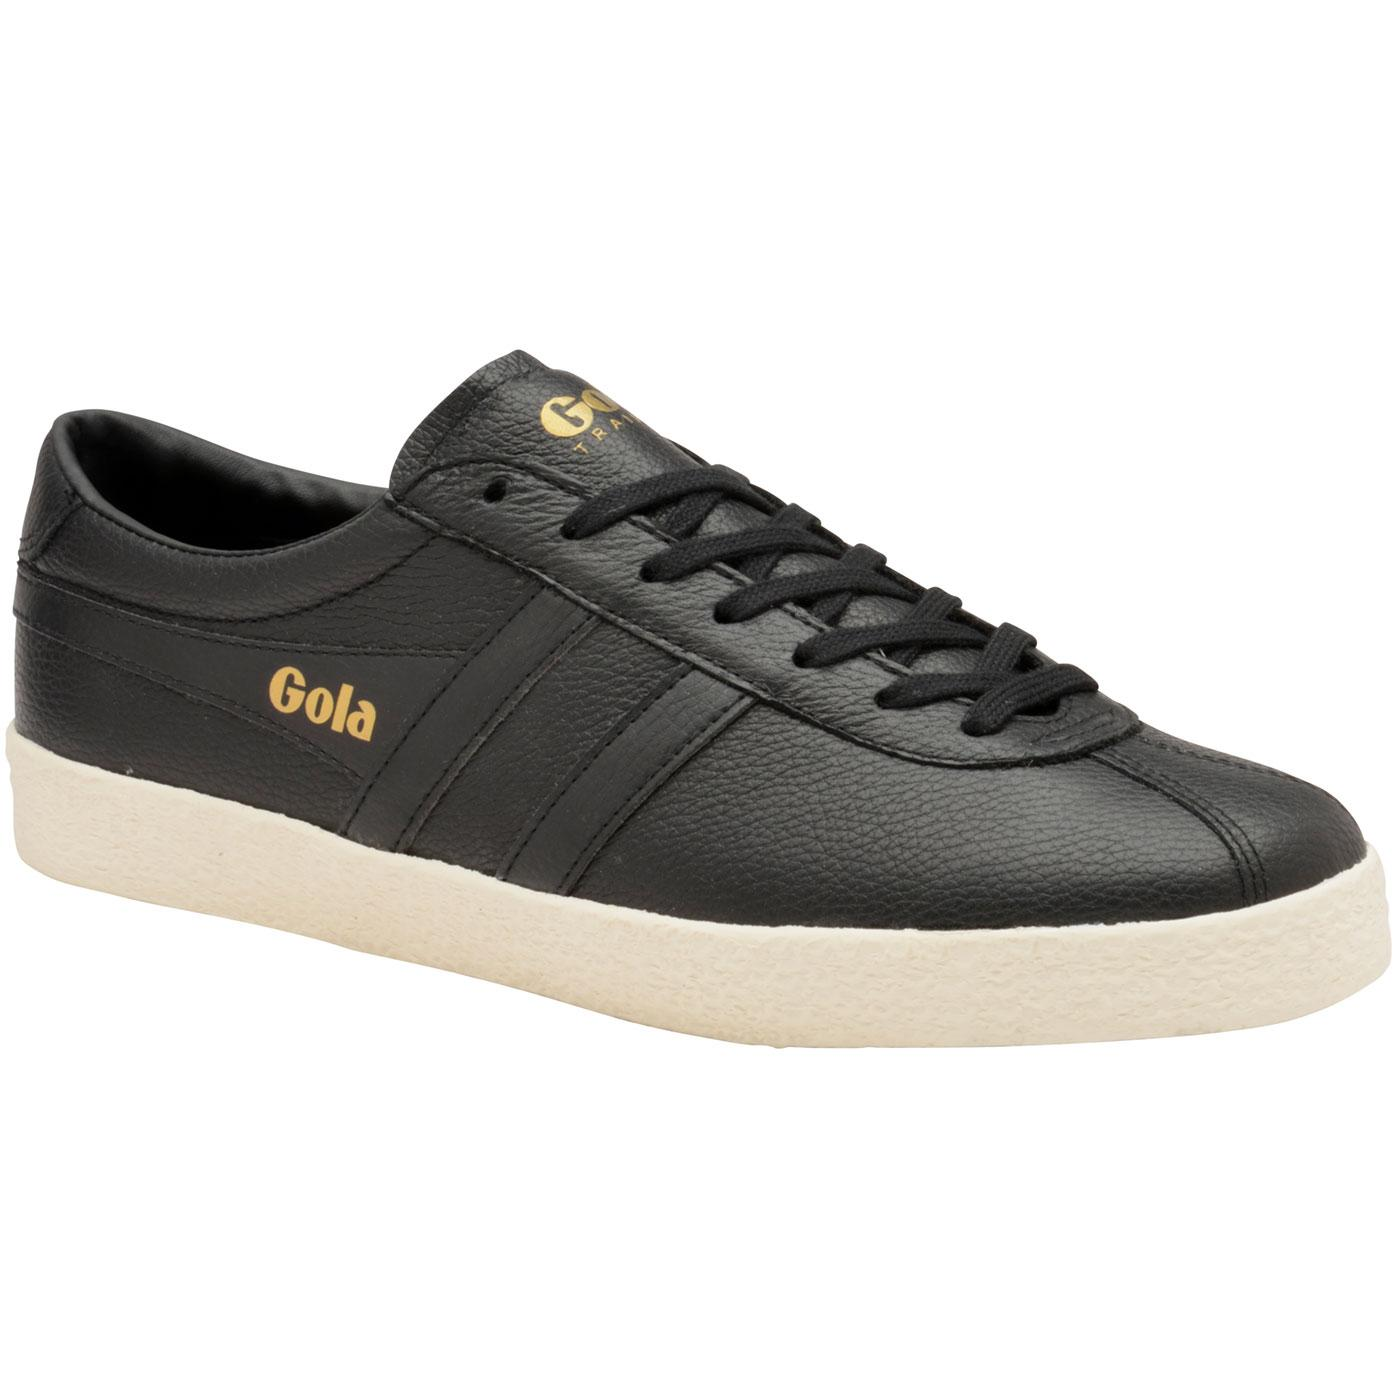 Trainer GOLA Retro 1960s Leather Trainers (Black)